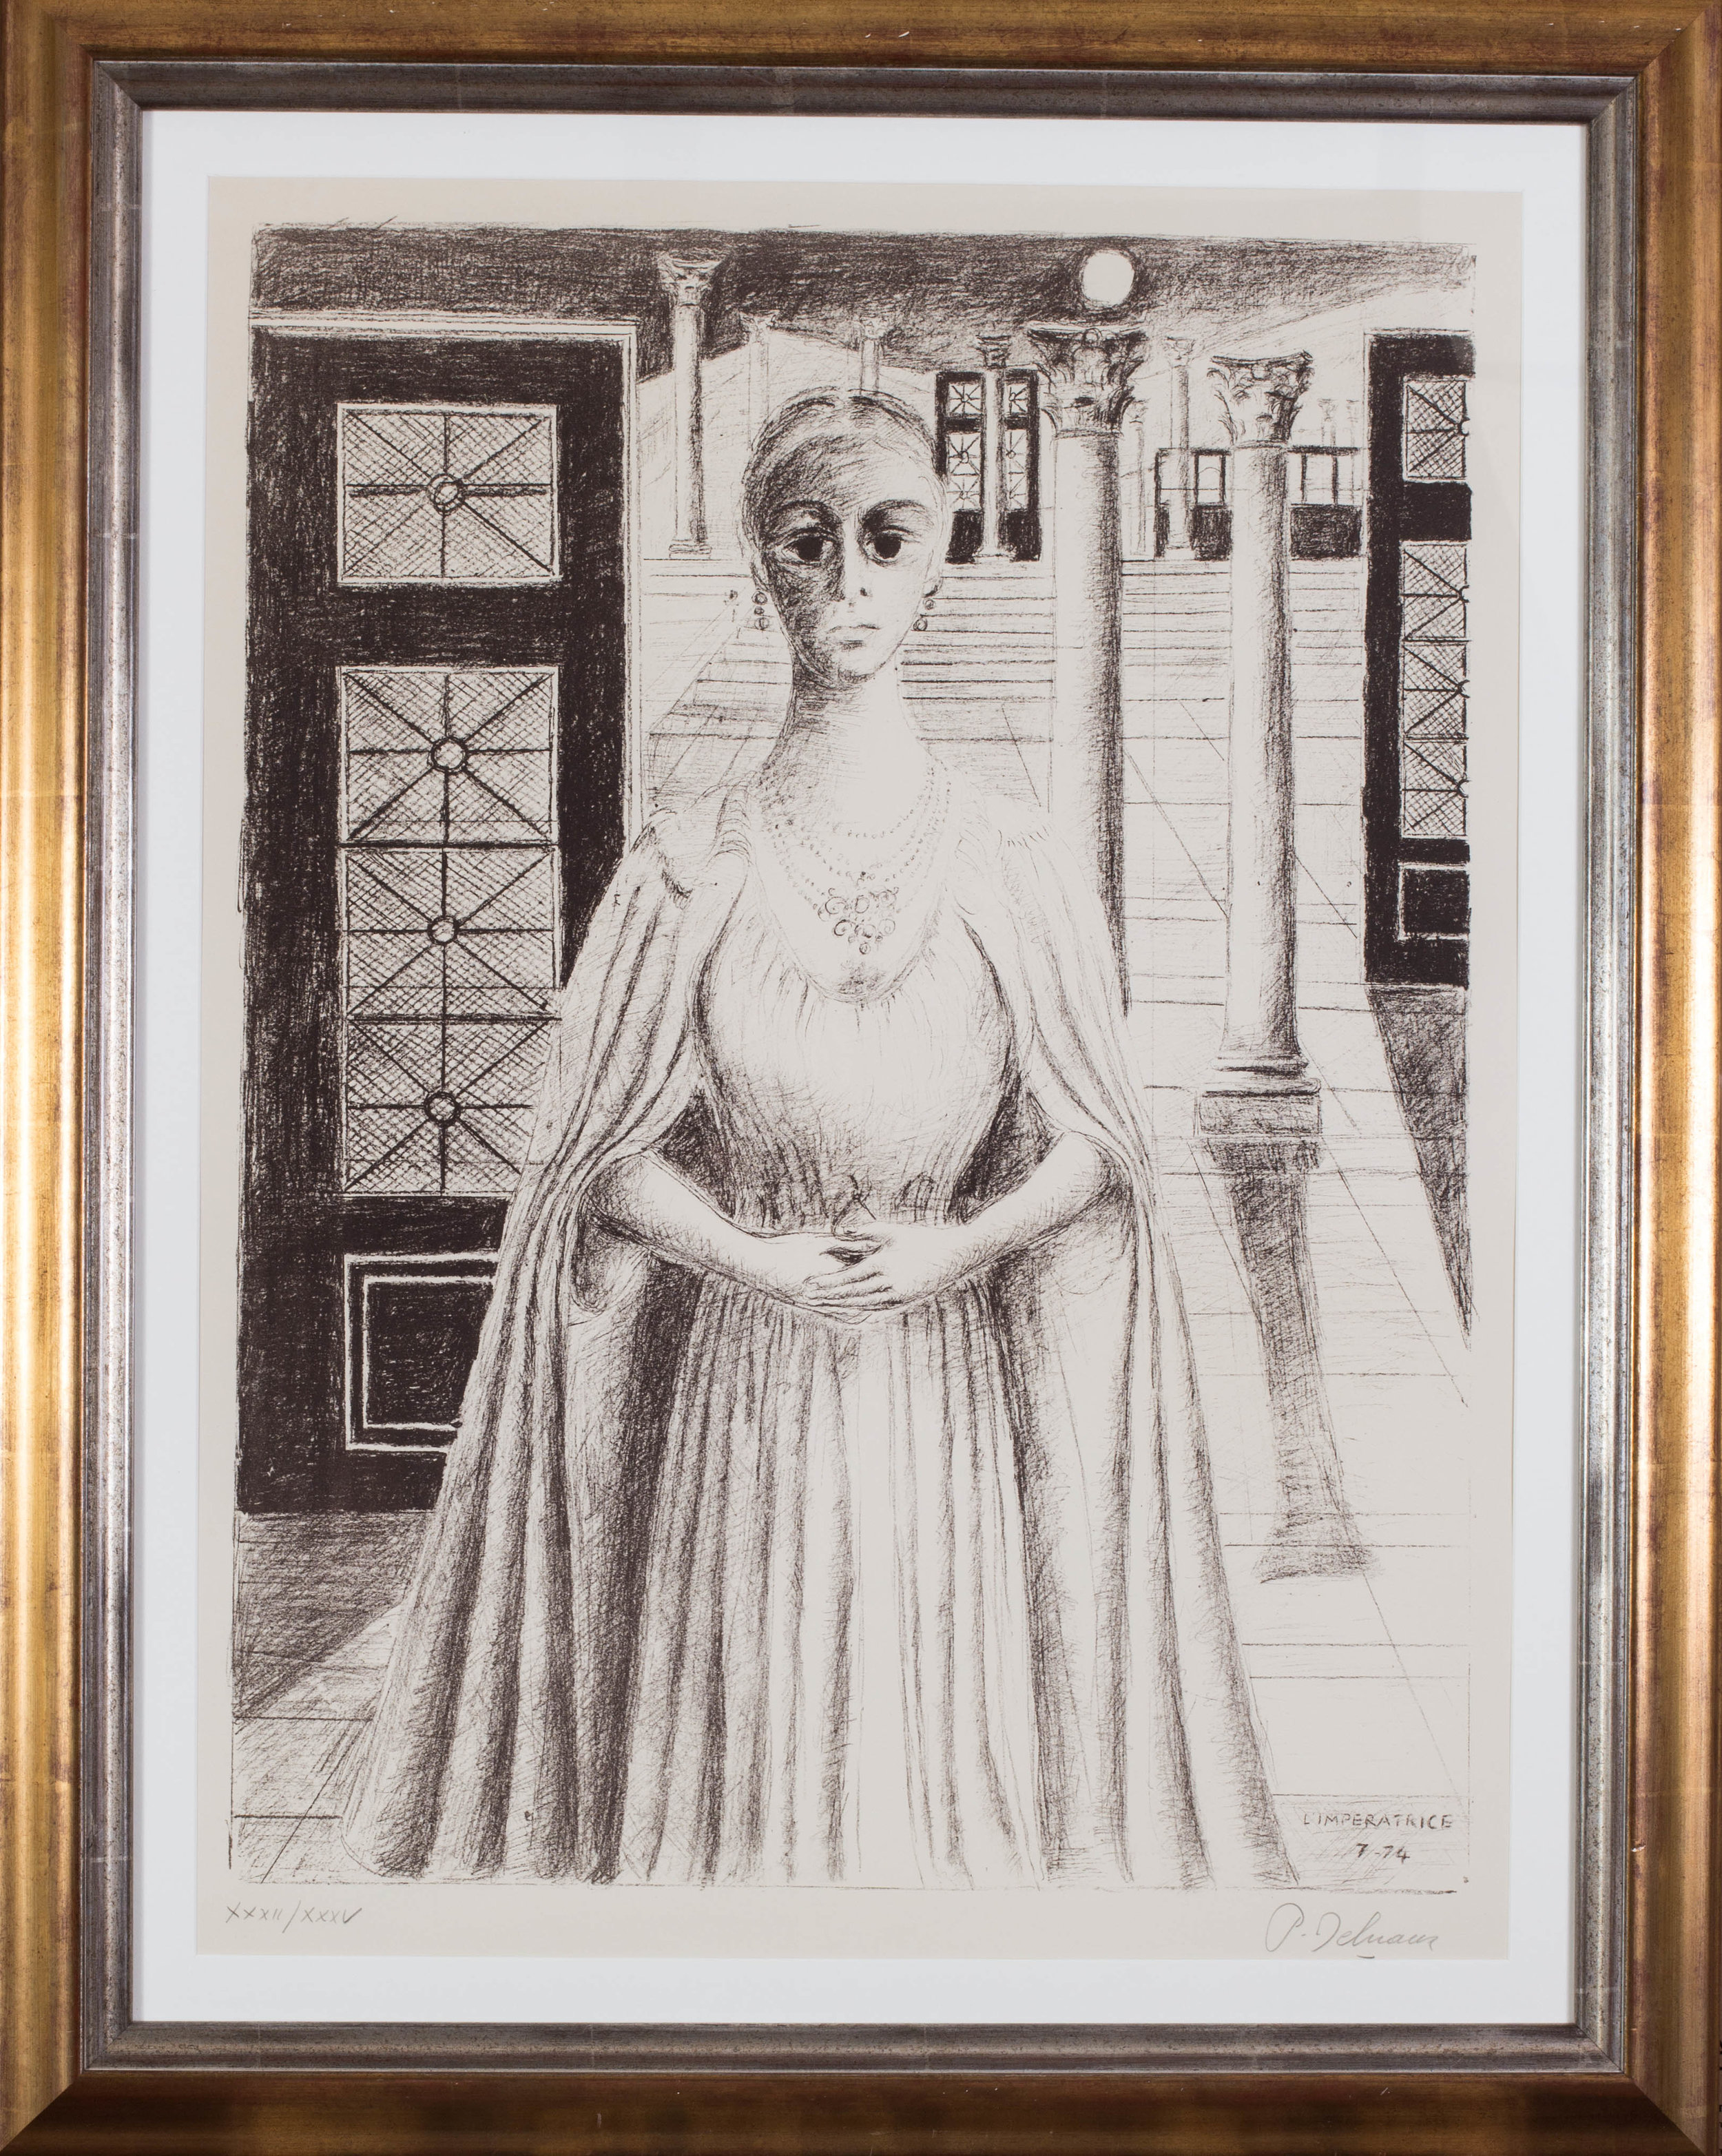 Paul Delvaux (Belgian, 1897 – 1994)    L'Imperatrice   Inscribed L'IMPERATRICE/7-74' (in the plate), signed and numbered in pencil 'XXXII/XXXV' (lower left), 'P. Delvaux' (lower right)  Lithograph  33.1/2 x 24.3/4in. (85 x 63cm.) (measured to slip edge)   Price: £4,100